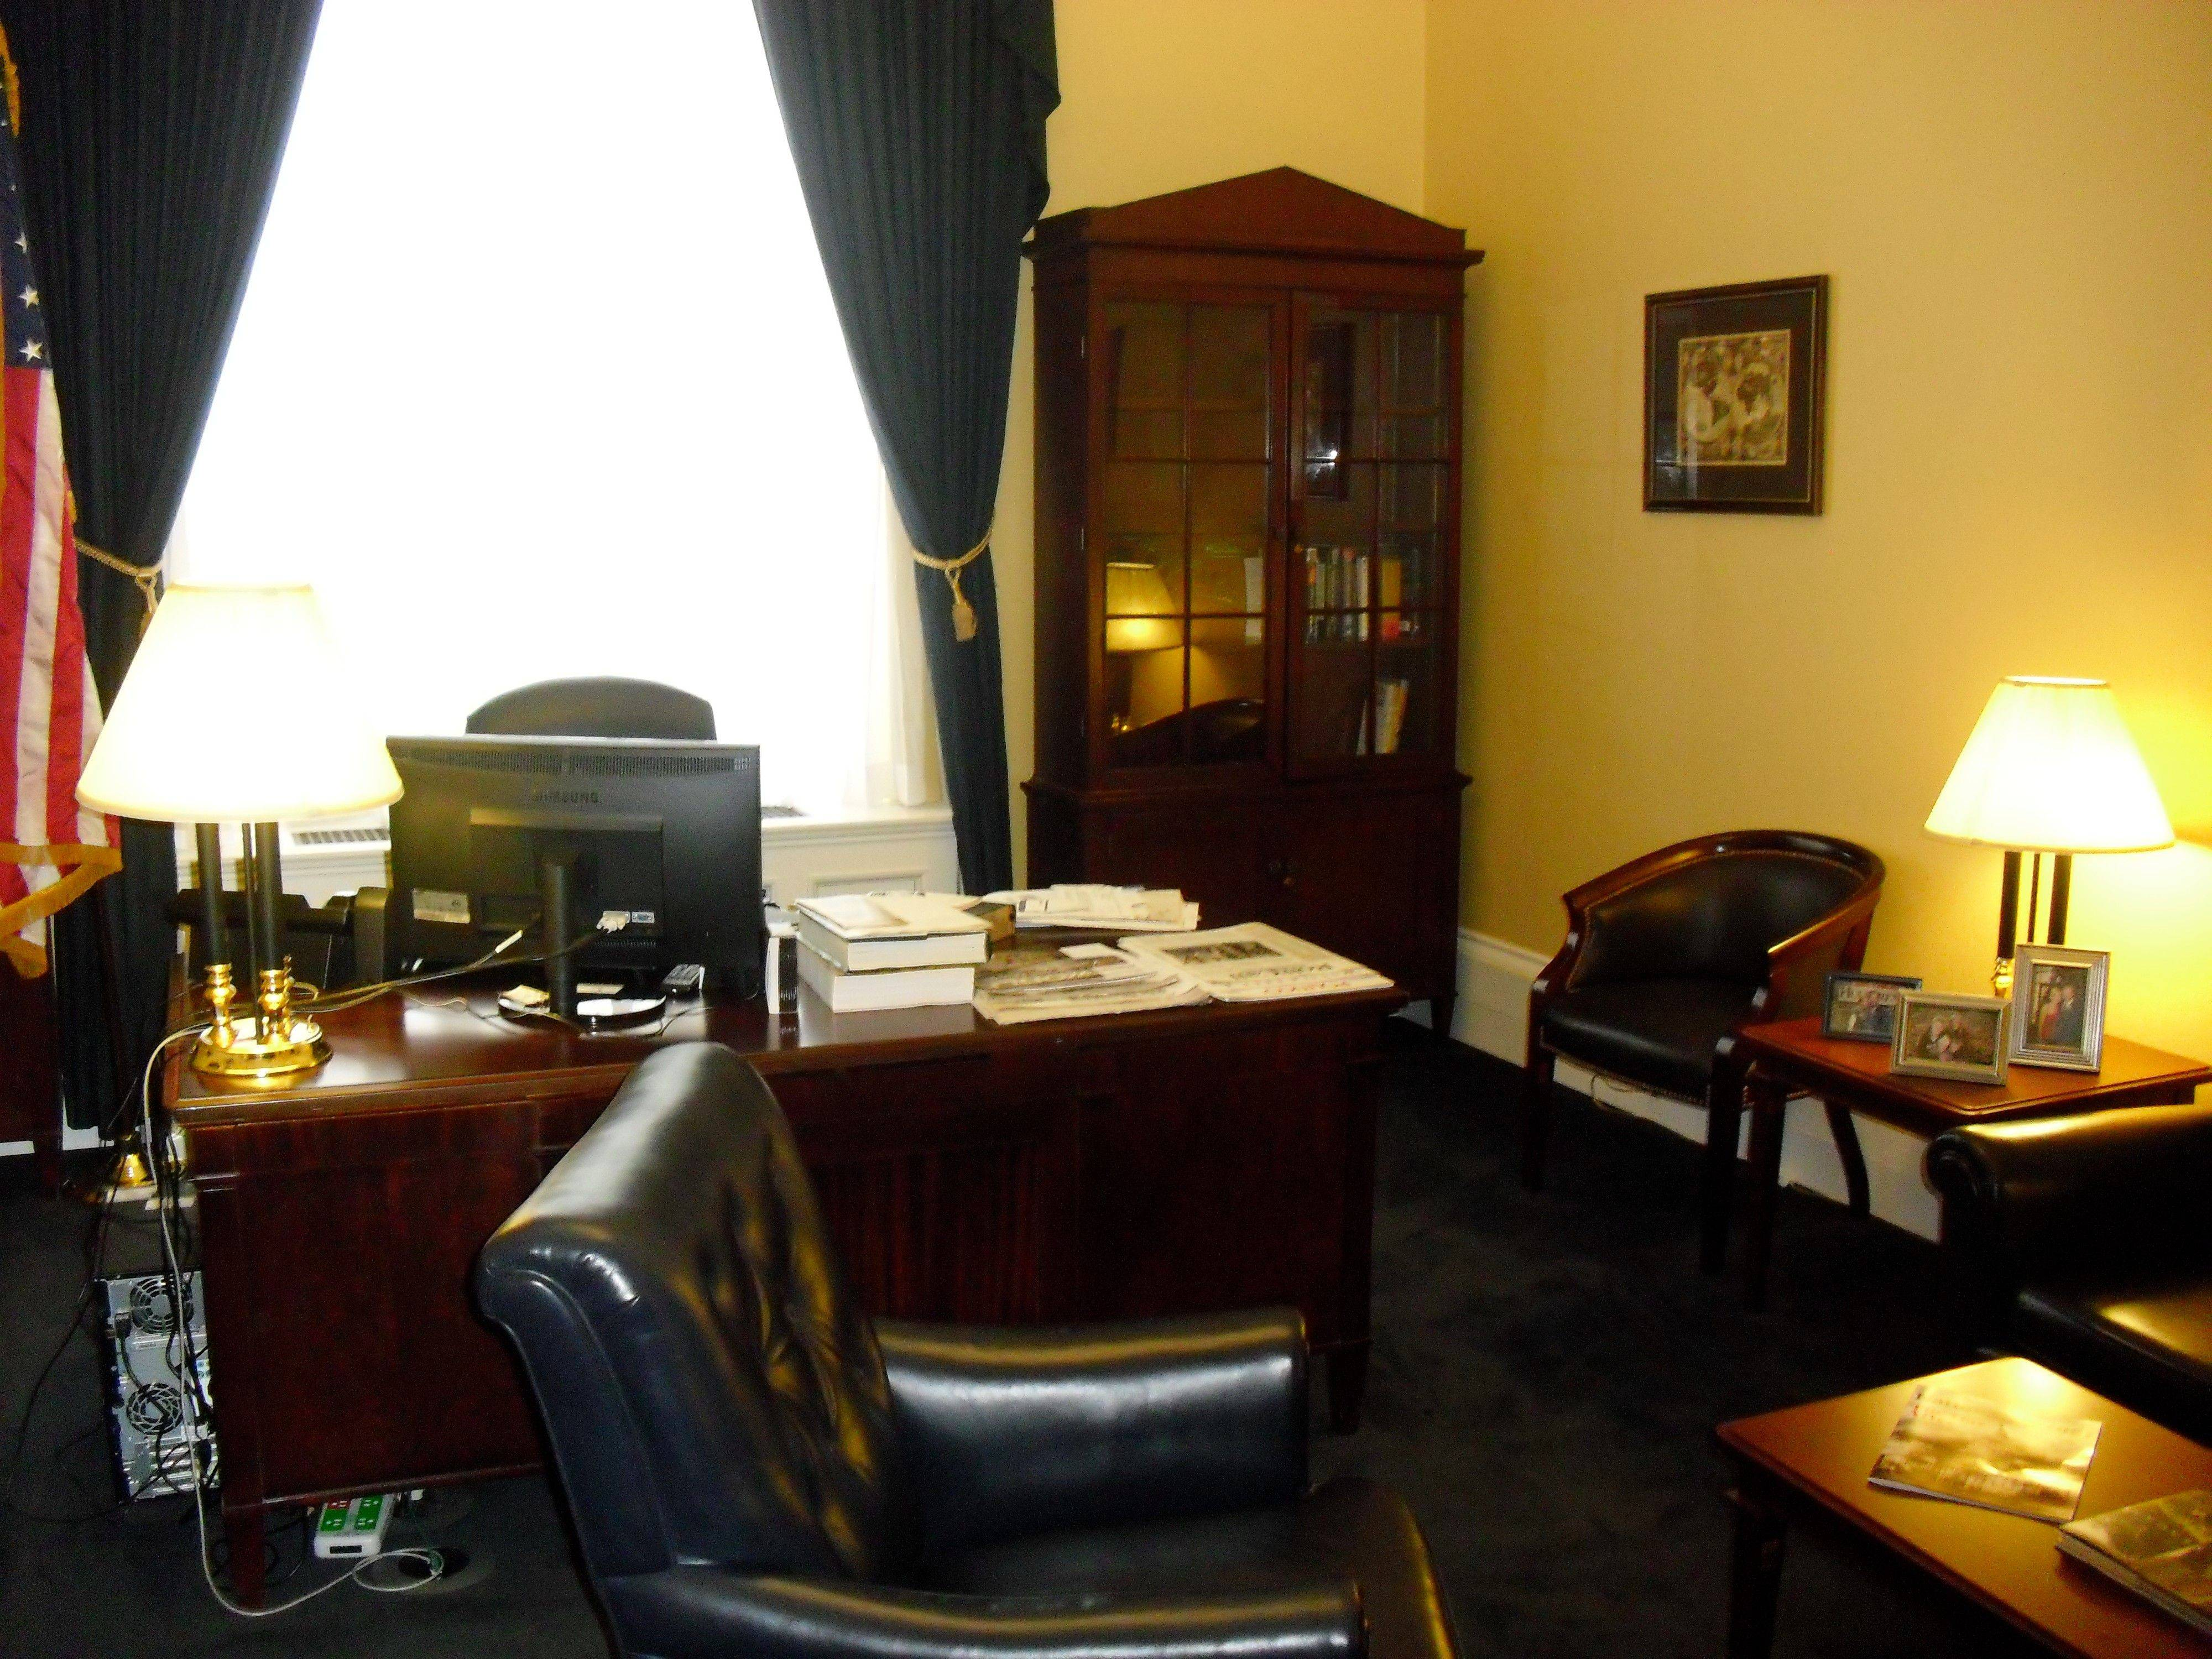 U.S. Rep. Randy Hultgren's office in the nation's capital.